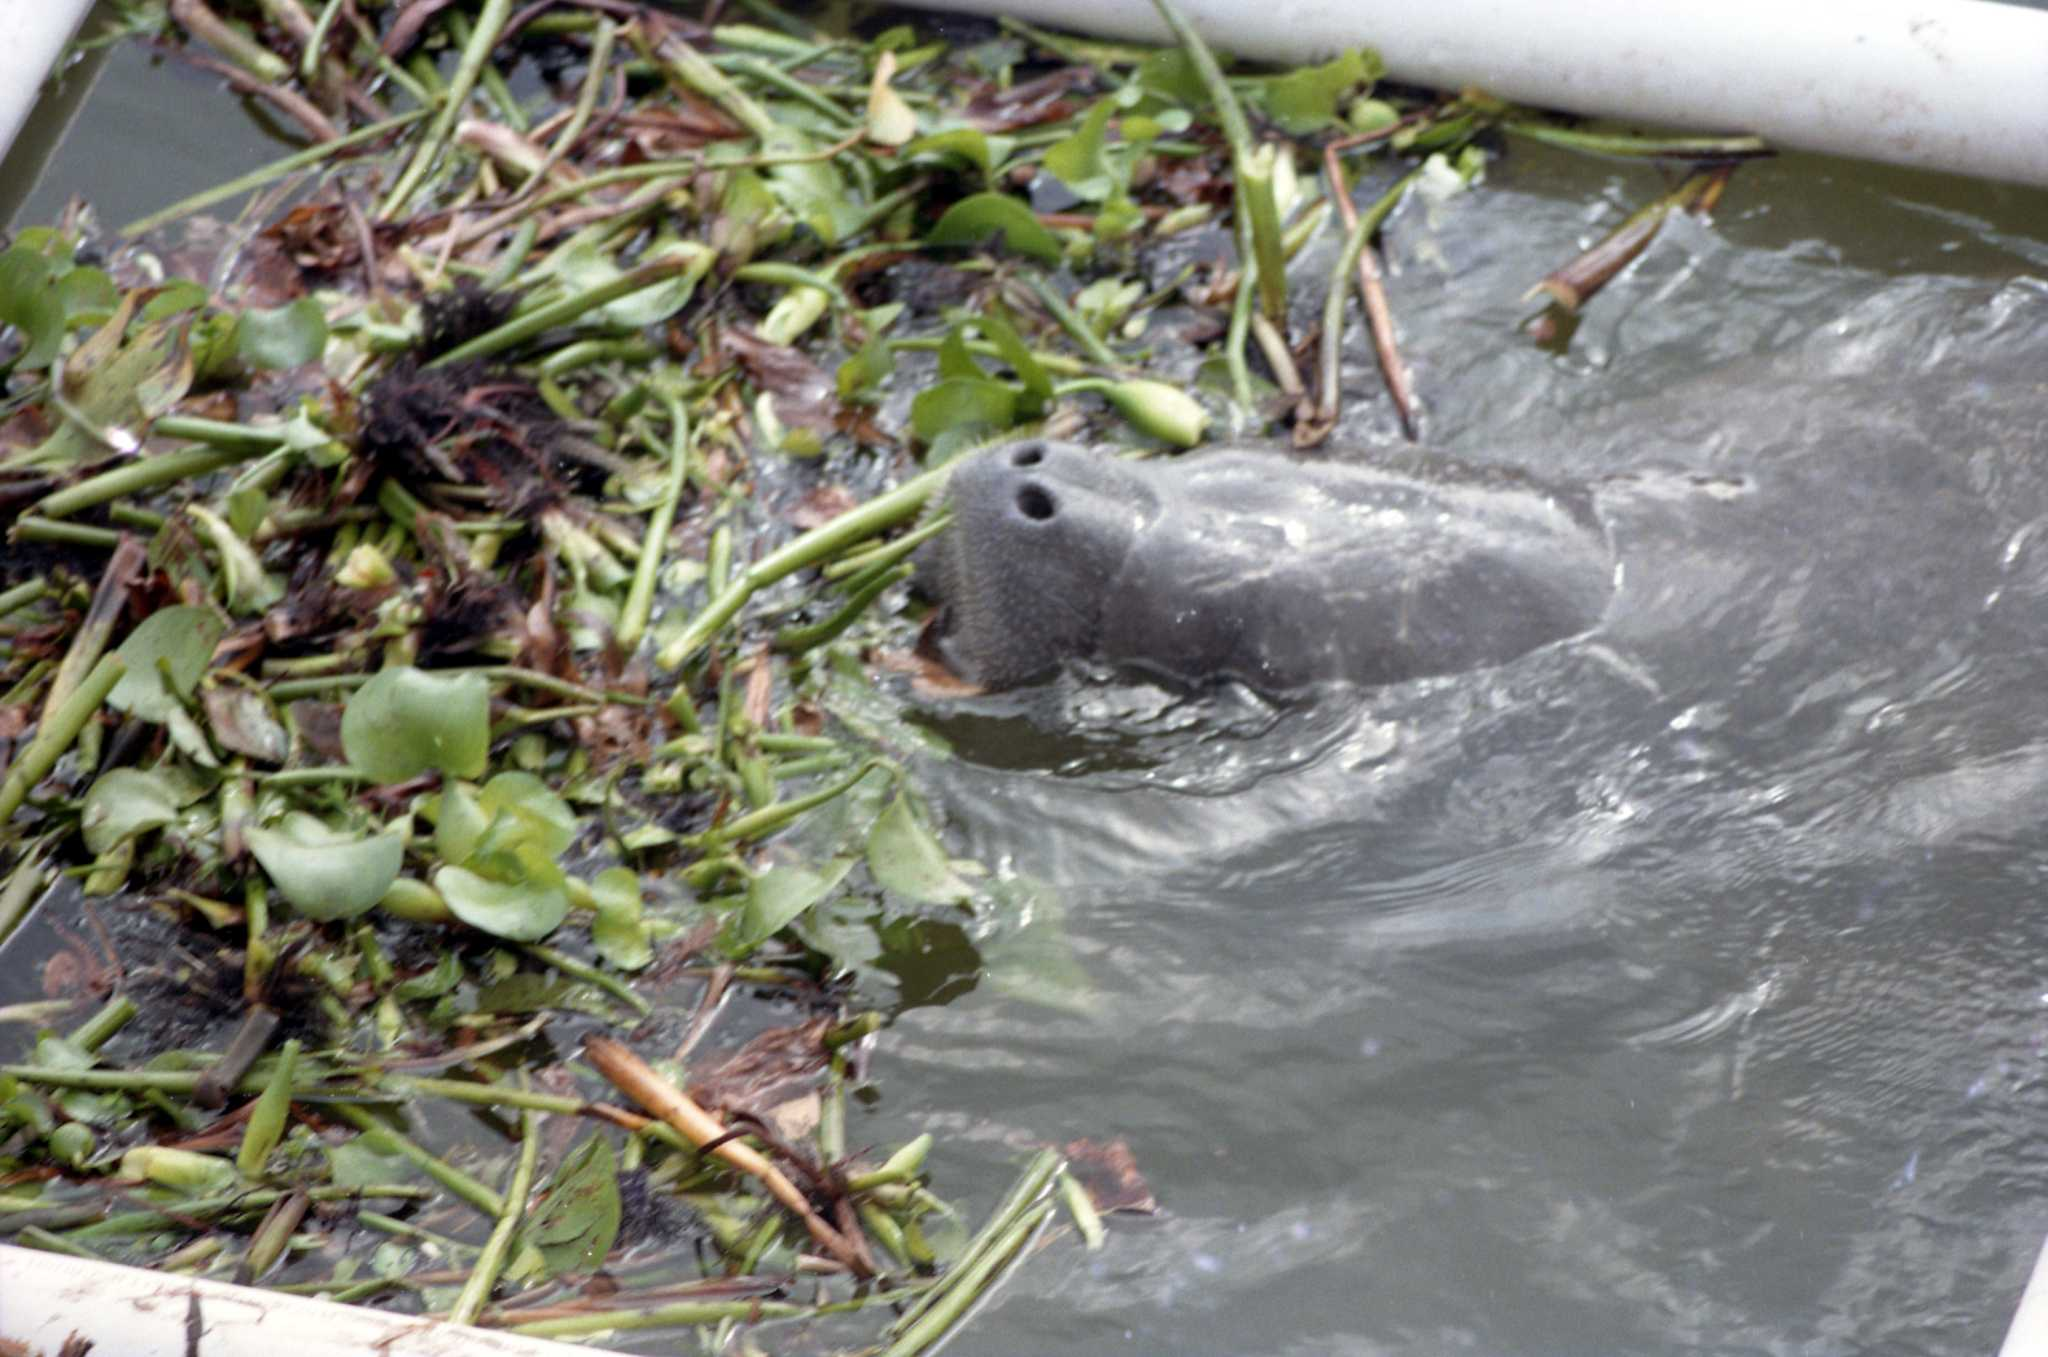 In 1995, a manatee made its way up Buffalo Bayou. Houstonians were enthralled